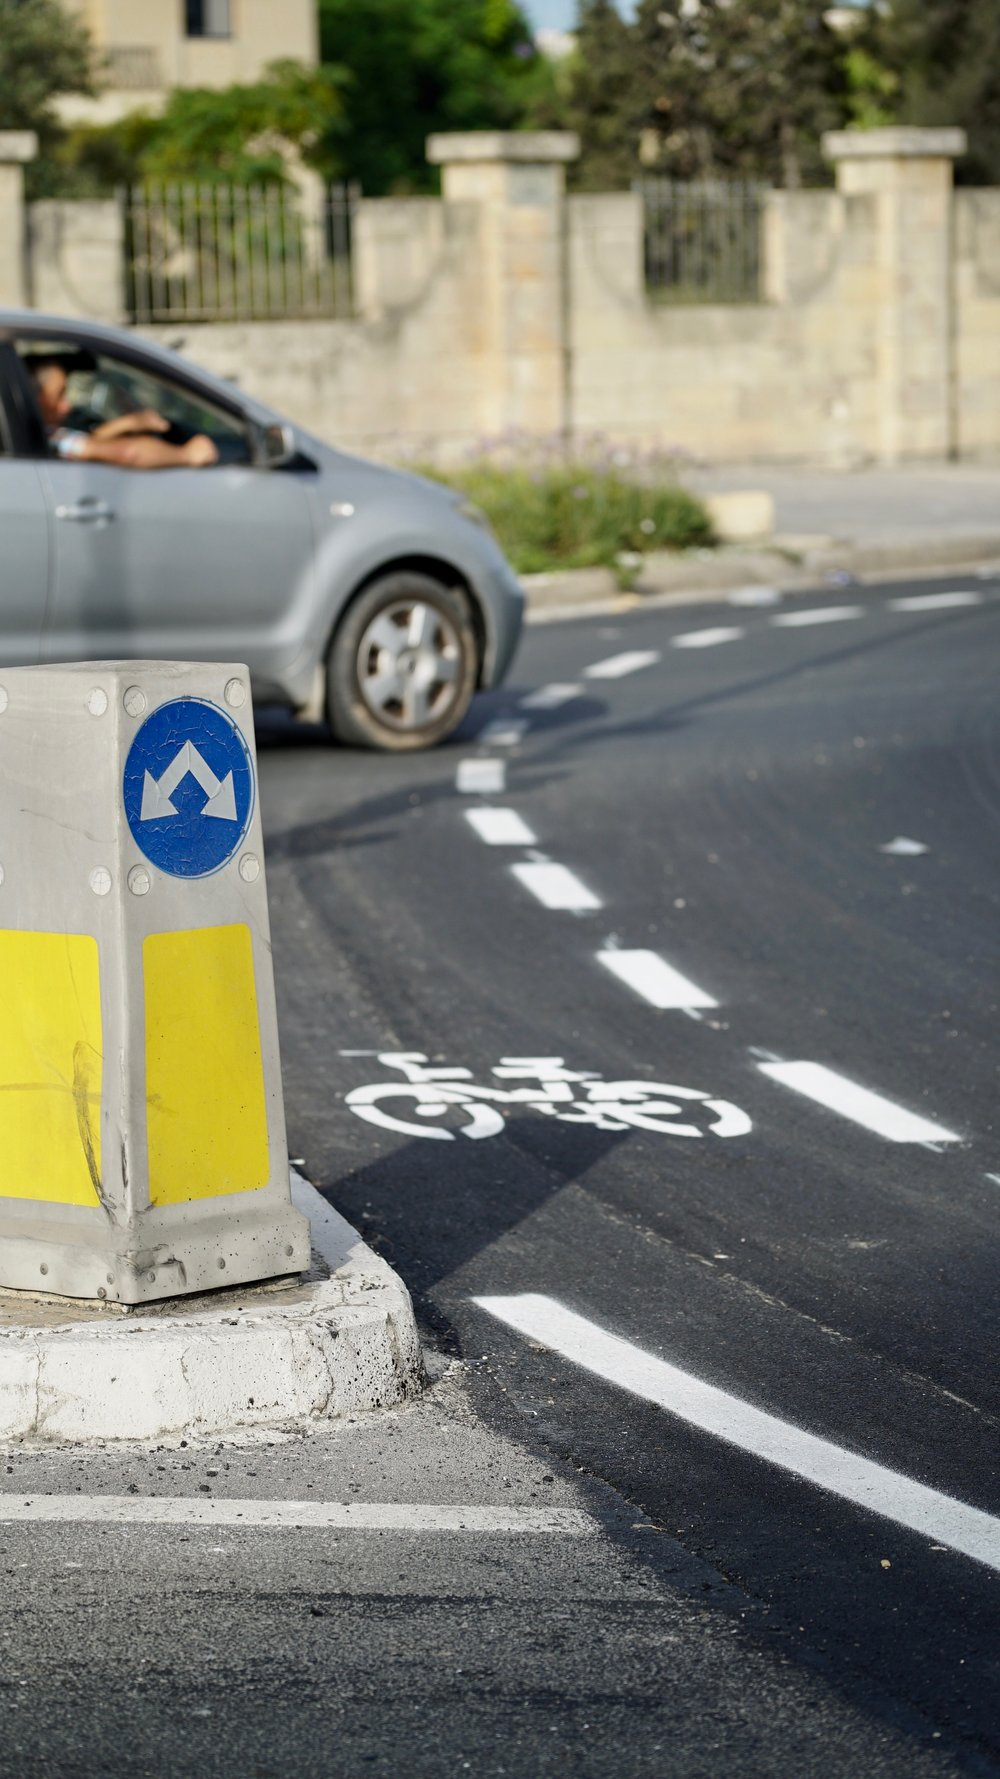 It is unclear who shall have right of way in the new bicycle roundabout lanes designed by Infrastructure Malta. Our proposals to shift bicycles away from the car lanes outside the roundabouts so far have not been taken up.